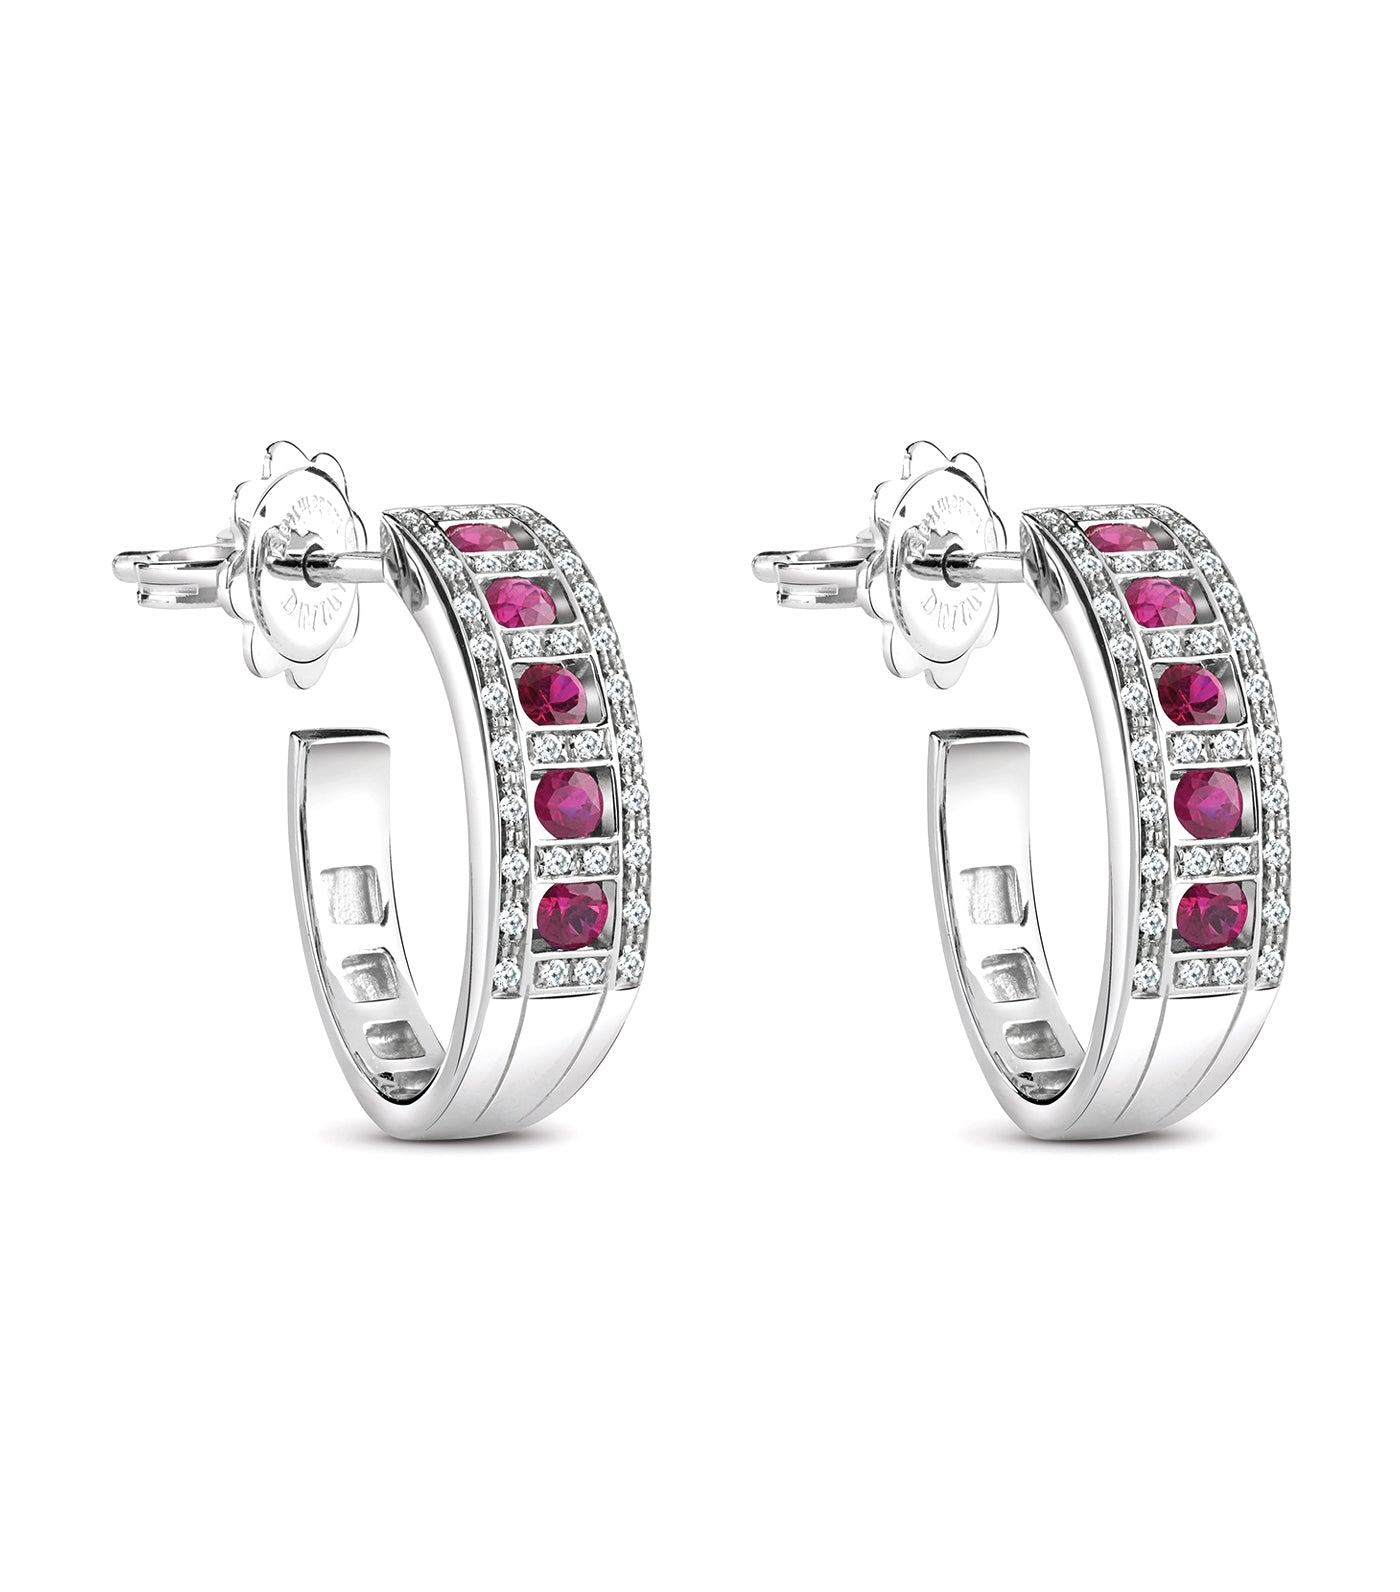 Belle Époque White Gold Diamonds and Rubies Earrings